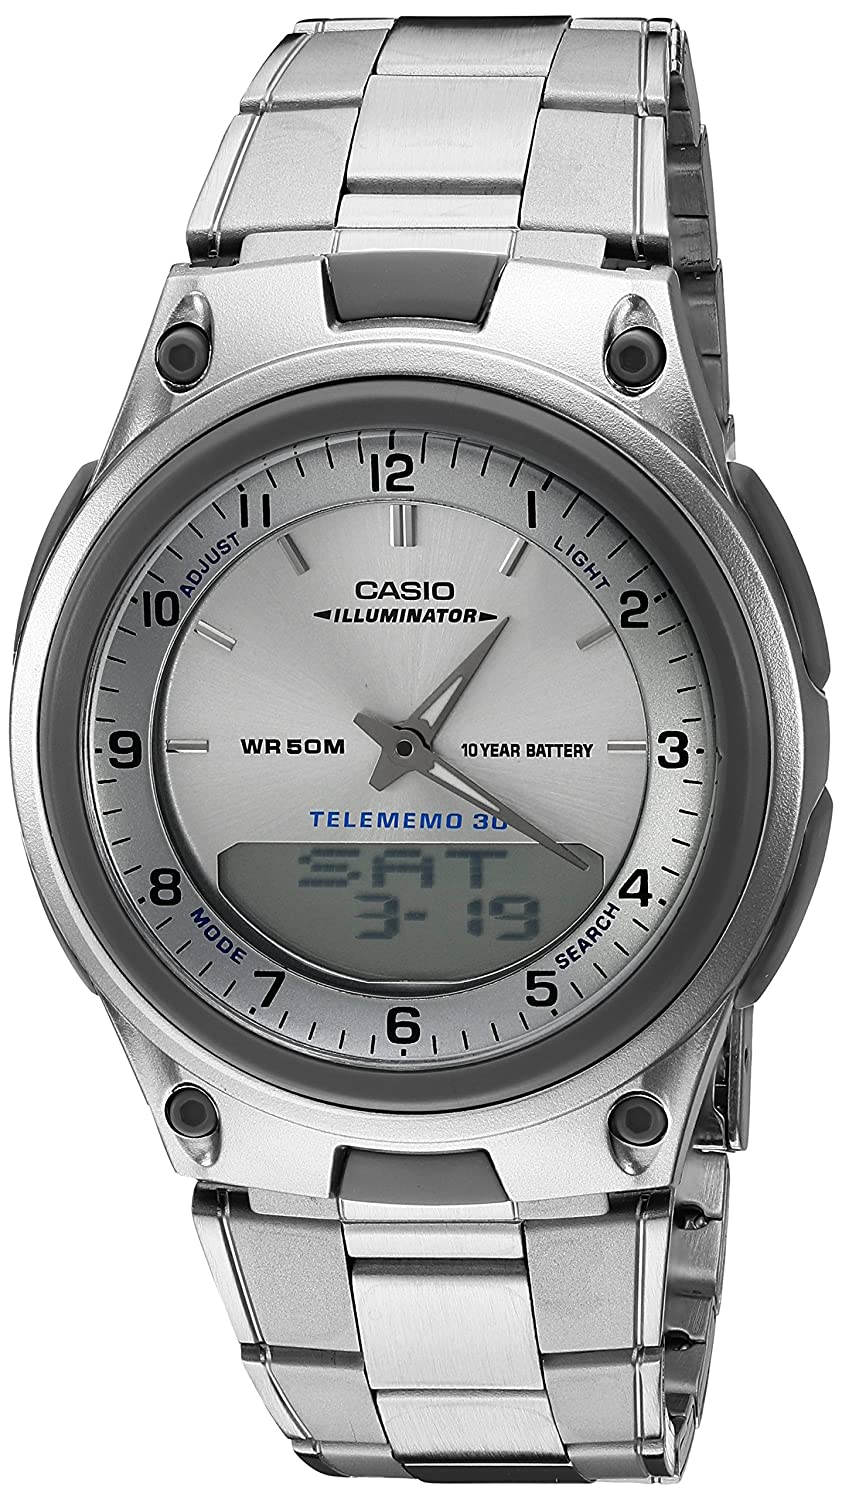 Casio Men AW80D7A Sports Chronograph Alarm 10Year Battery Databank Watch